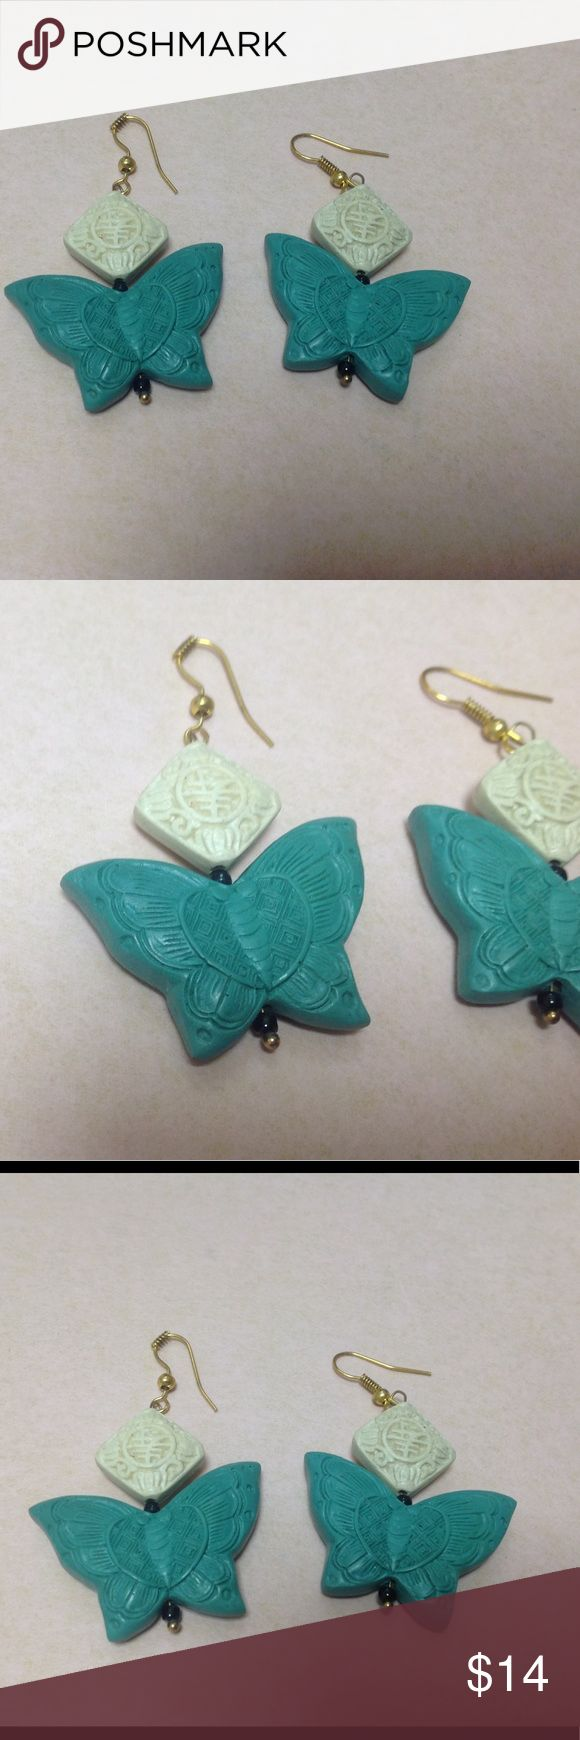 Reproduction Cinnabar Butterfly Earrings Excellent condition, large earrings Jewelry Earrings